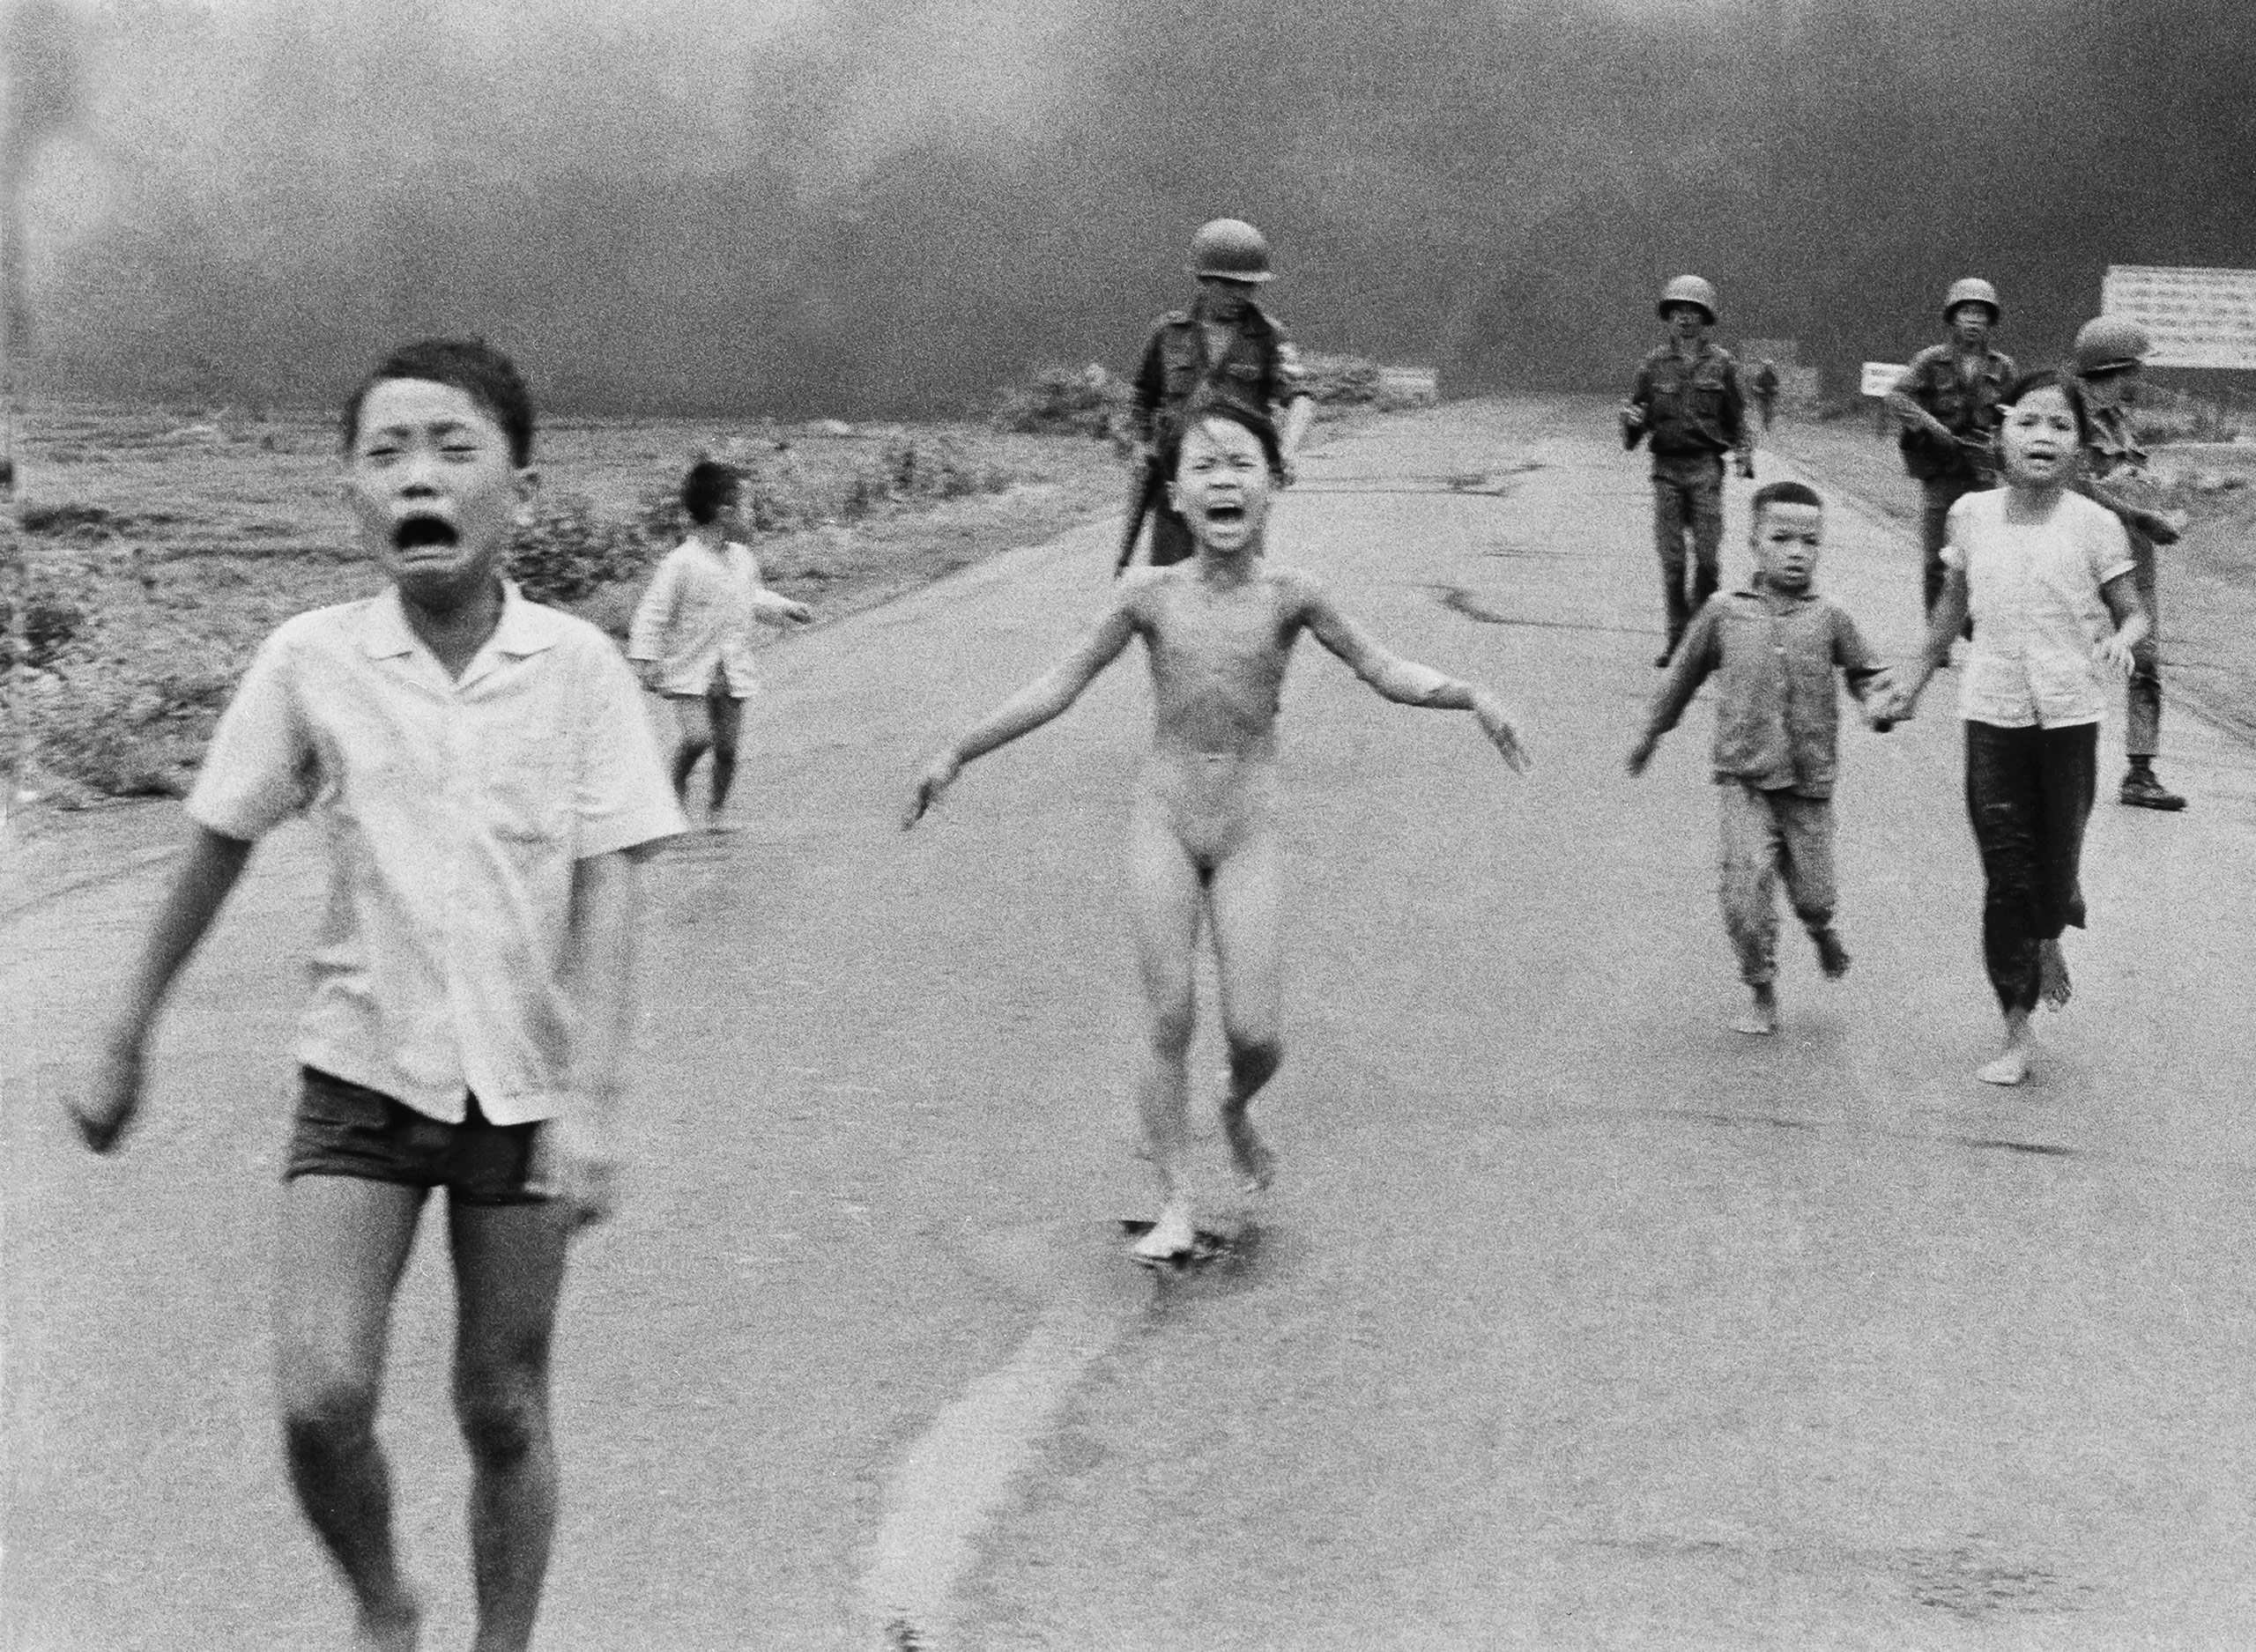 South Vietnamese forces follow after terrified children, including 9-year-old Kim Phuc, center, as they run down Route 1 near Trang Bang after an aerial napalm attack on suspected Vietcong hiding places on June 8, 1972.